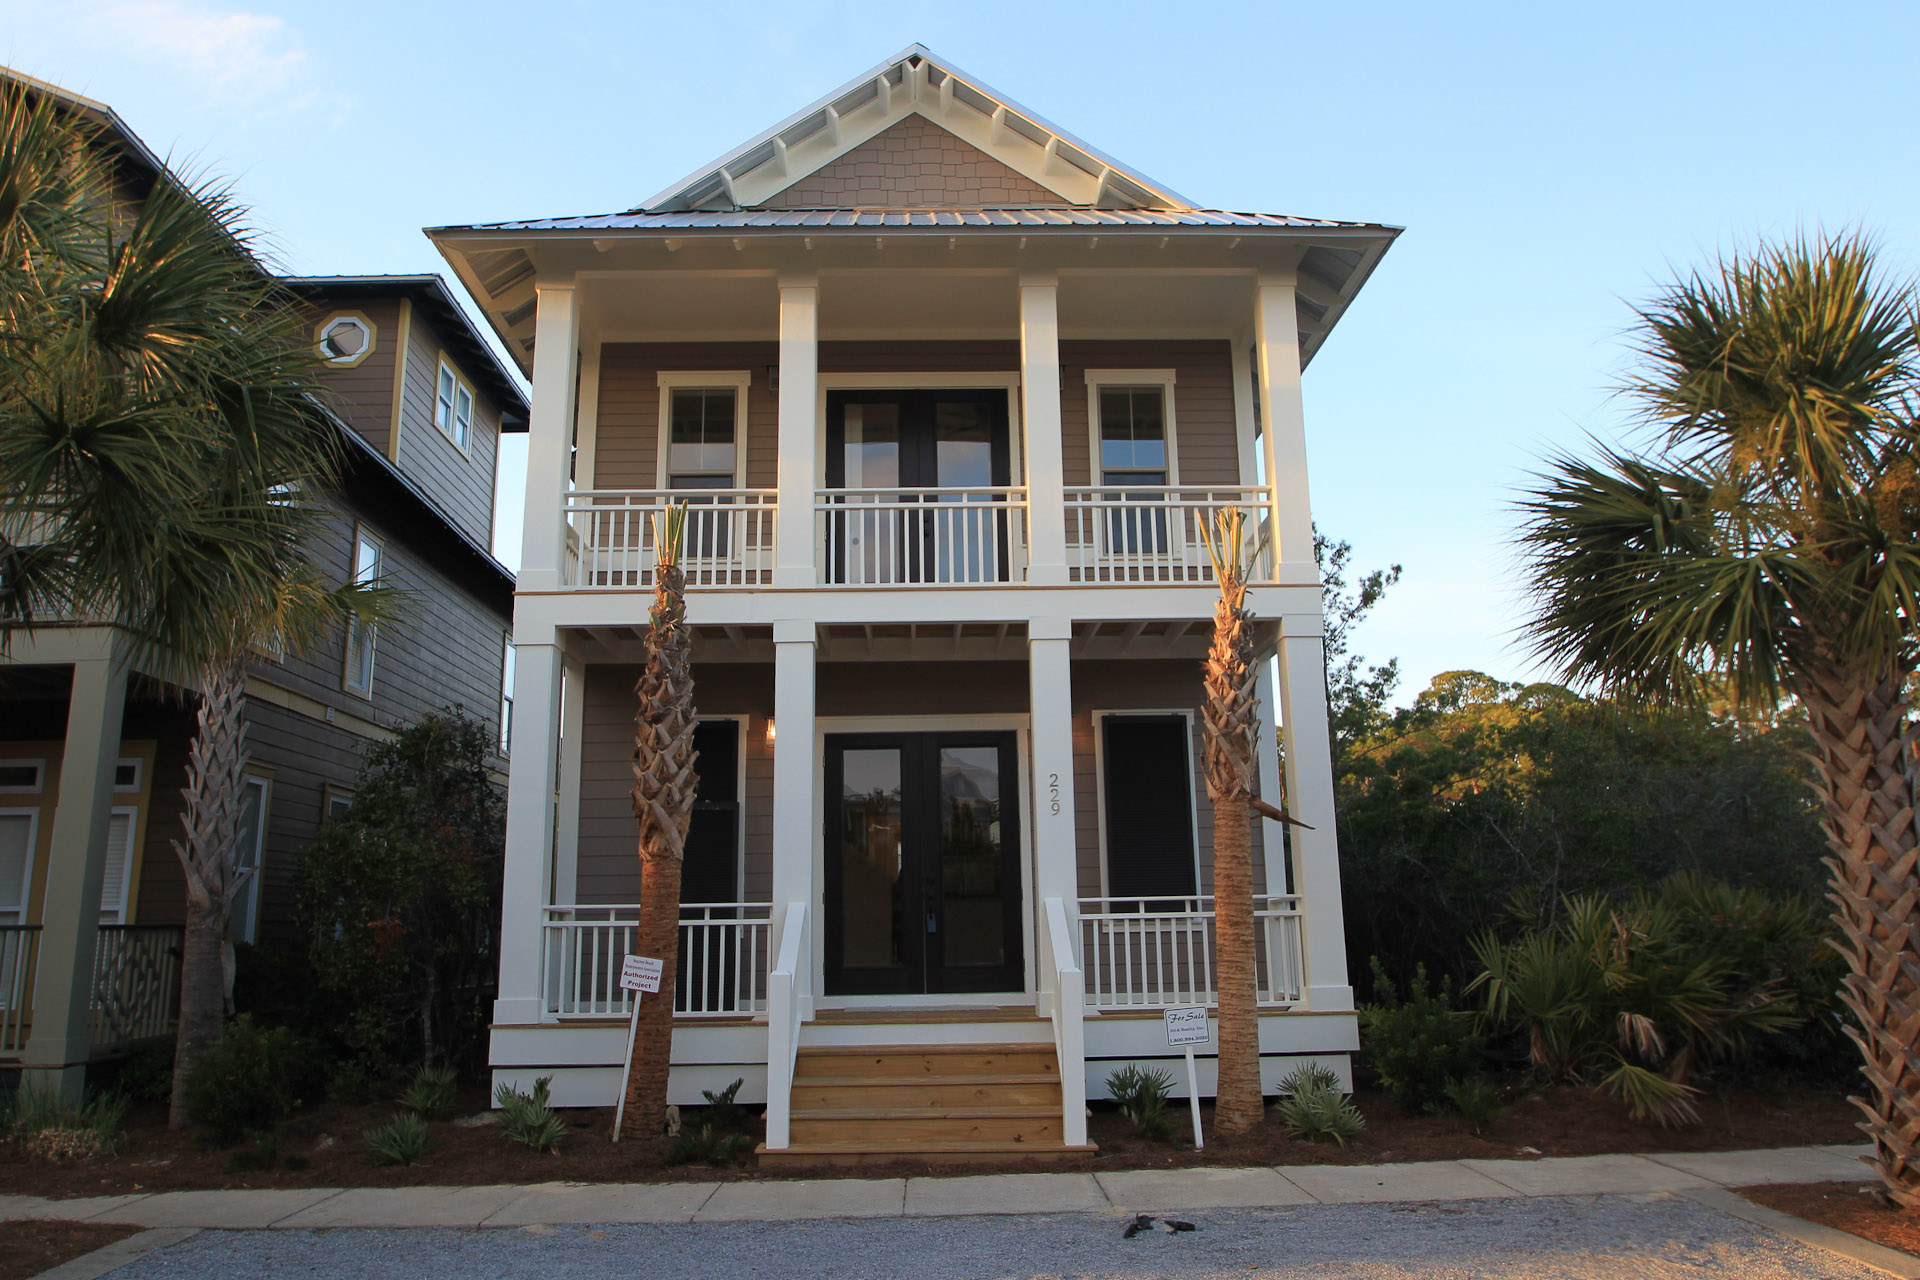 30a under 400k in seacrest beach florida for 30a home builders